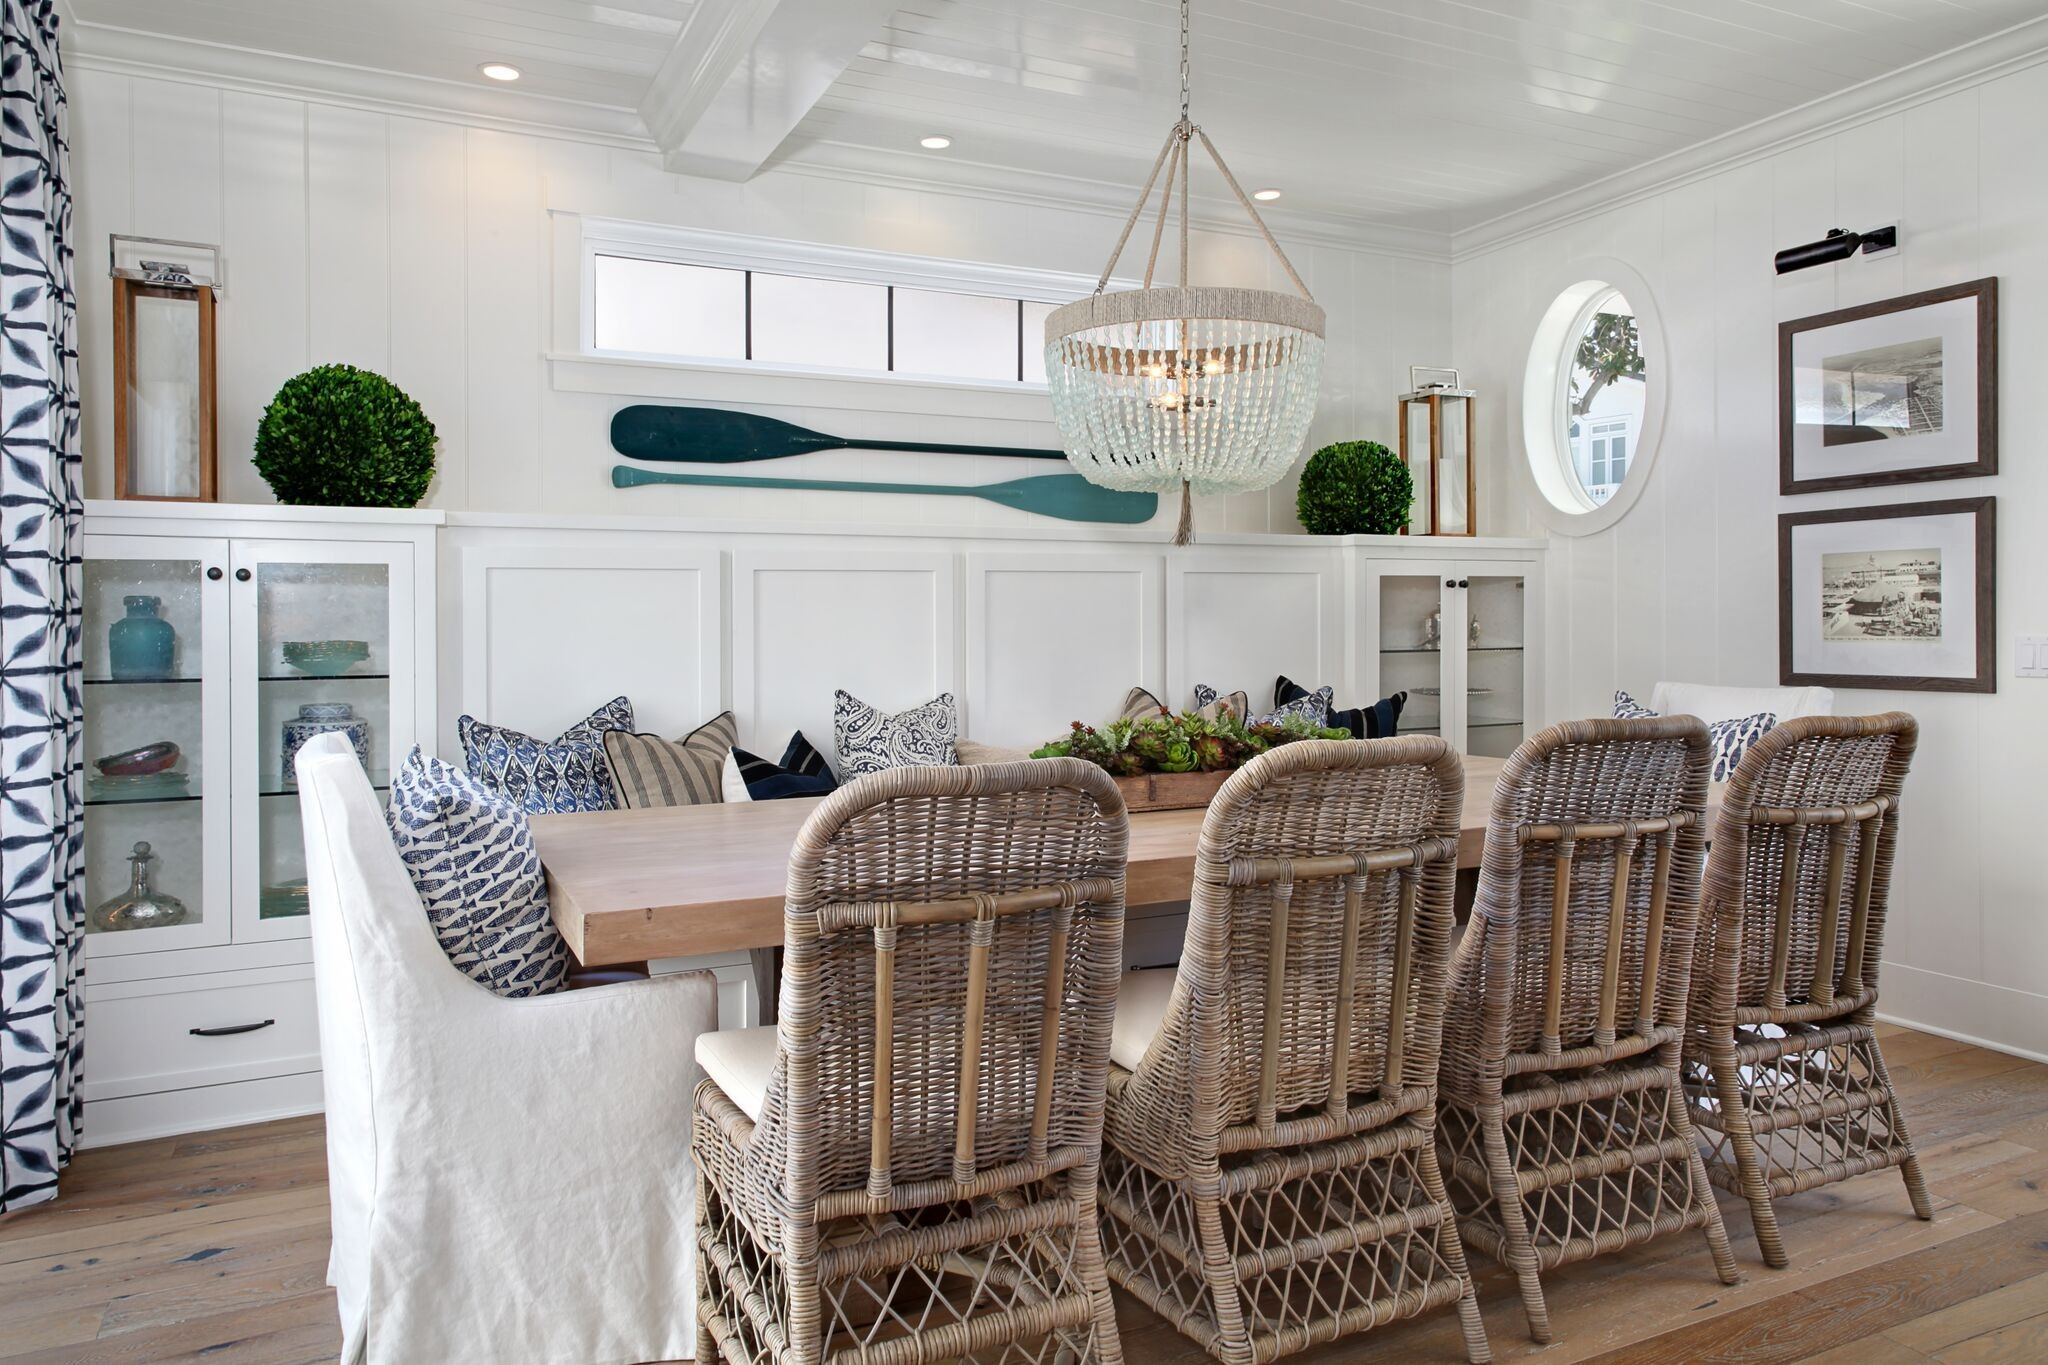 6 tips for decorating with coastal style year round - decorating